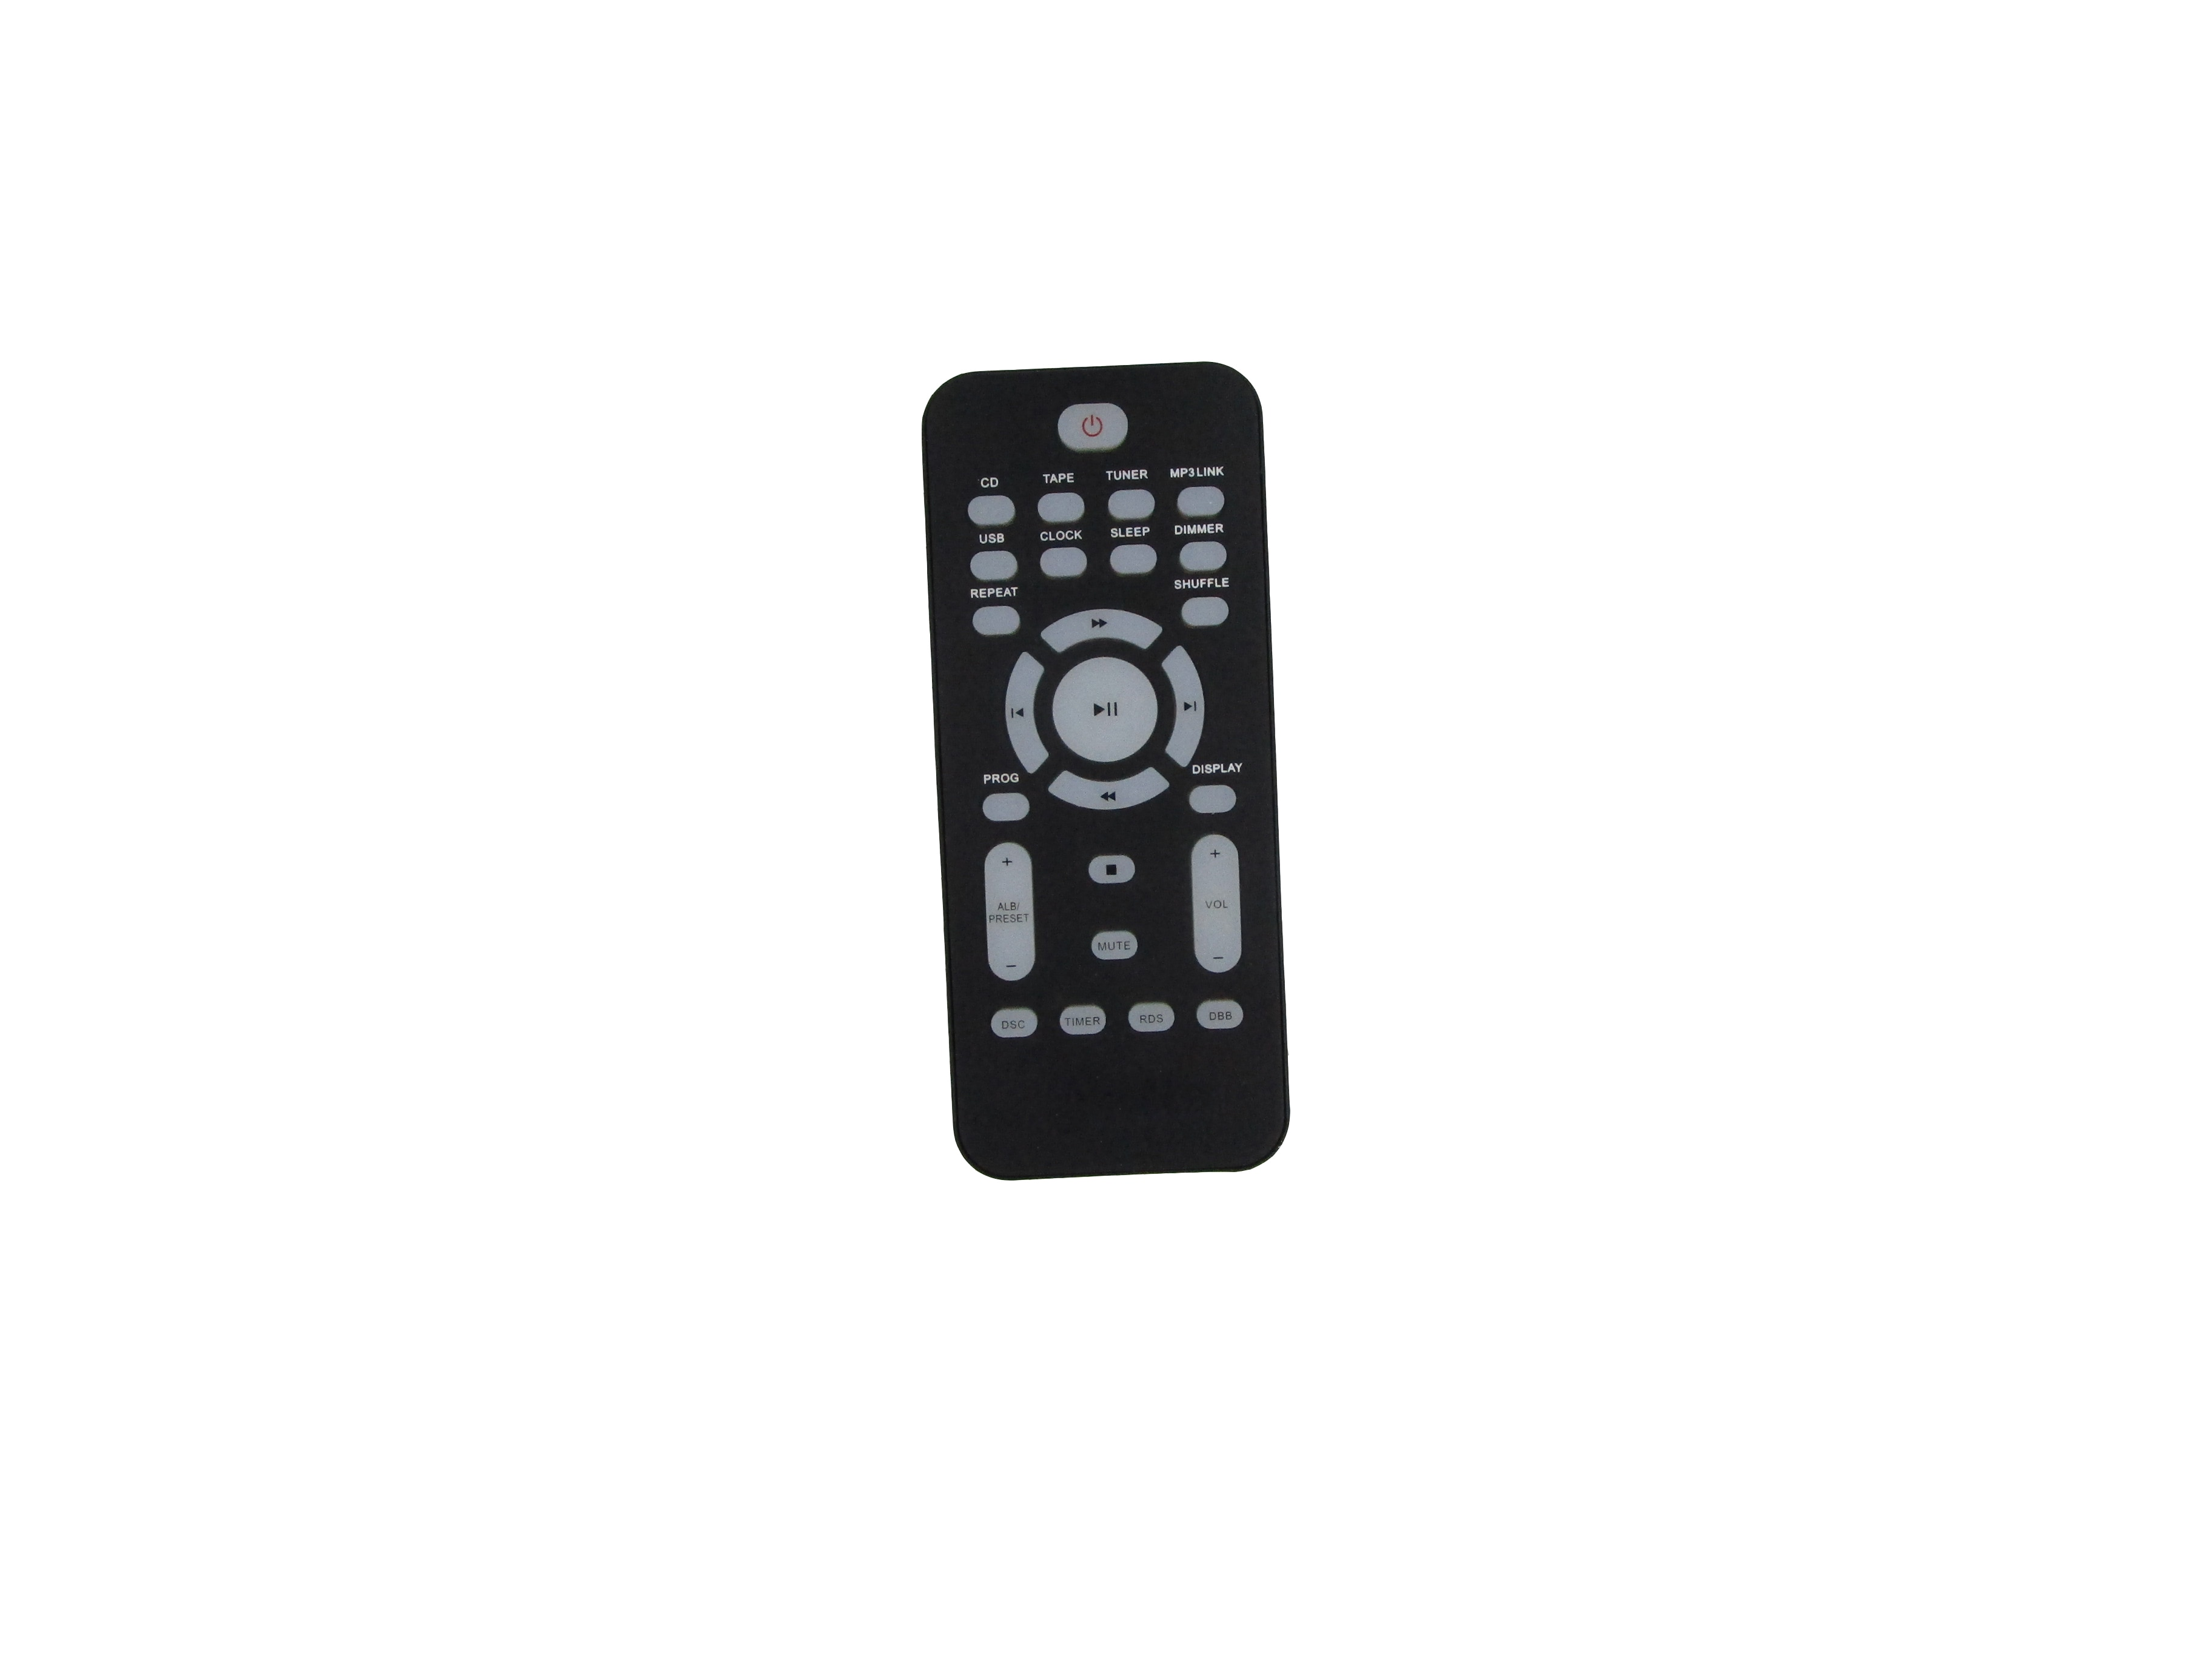 Remote Control For Philips MCM1110 MCM1115 MCM1120 MCM1115/51 MCM1120/12 Classic Micro Music System